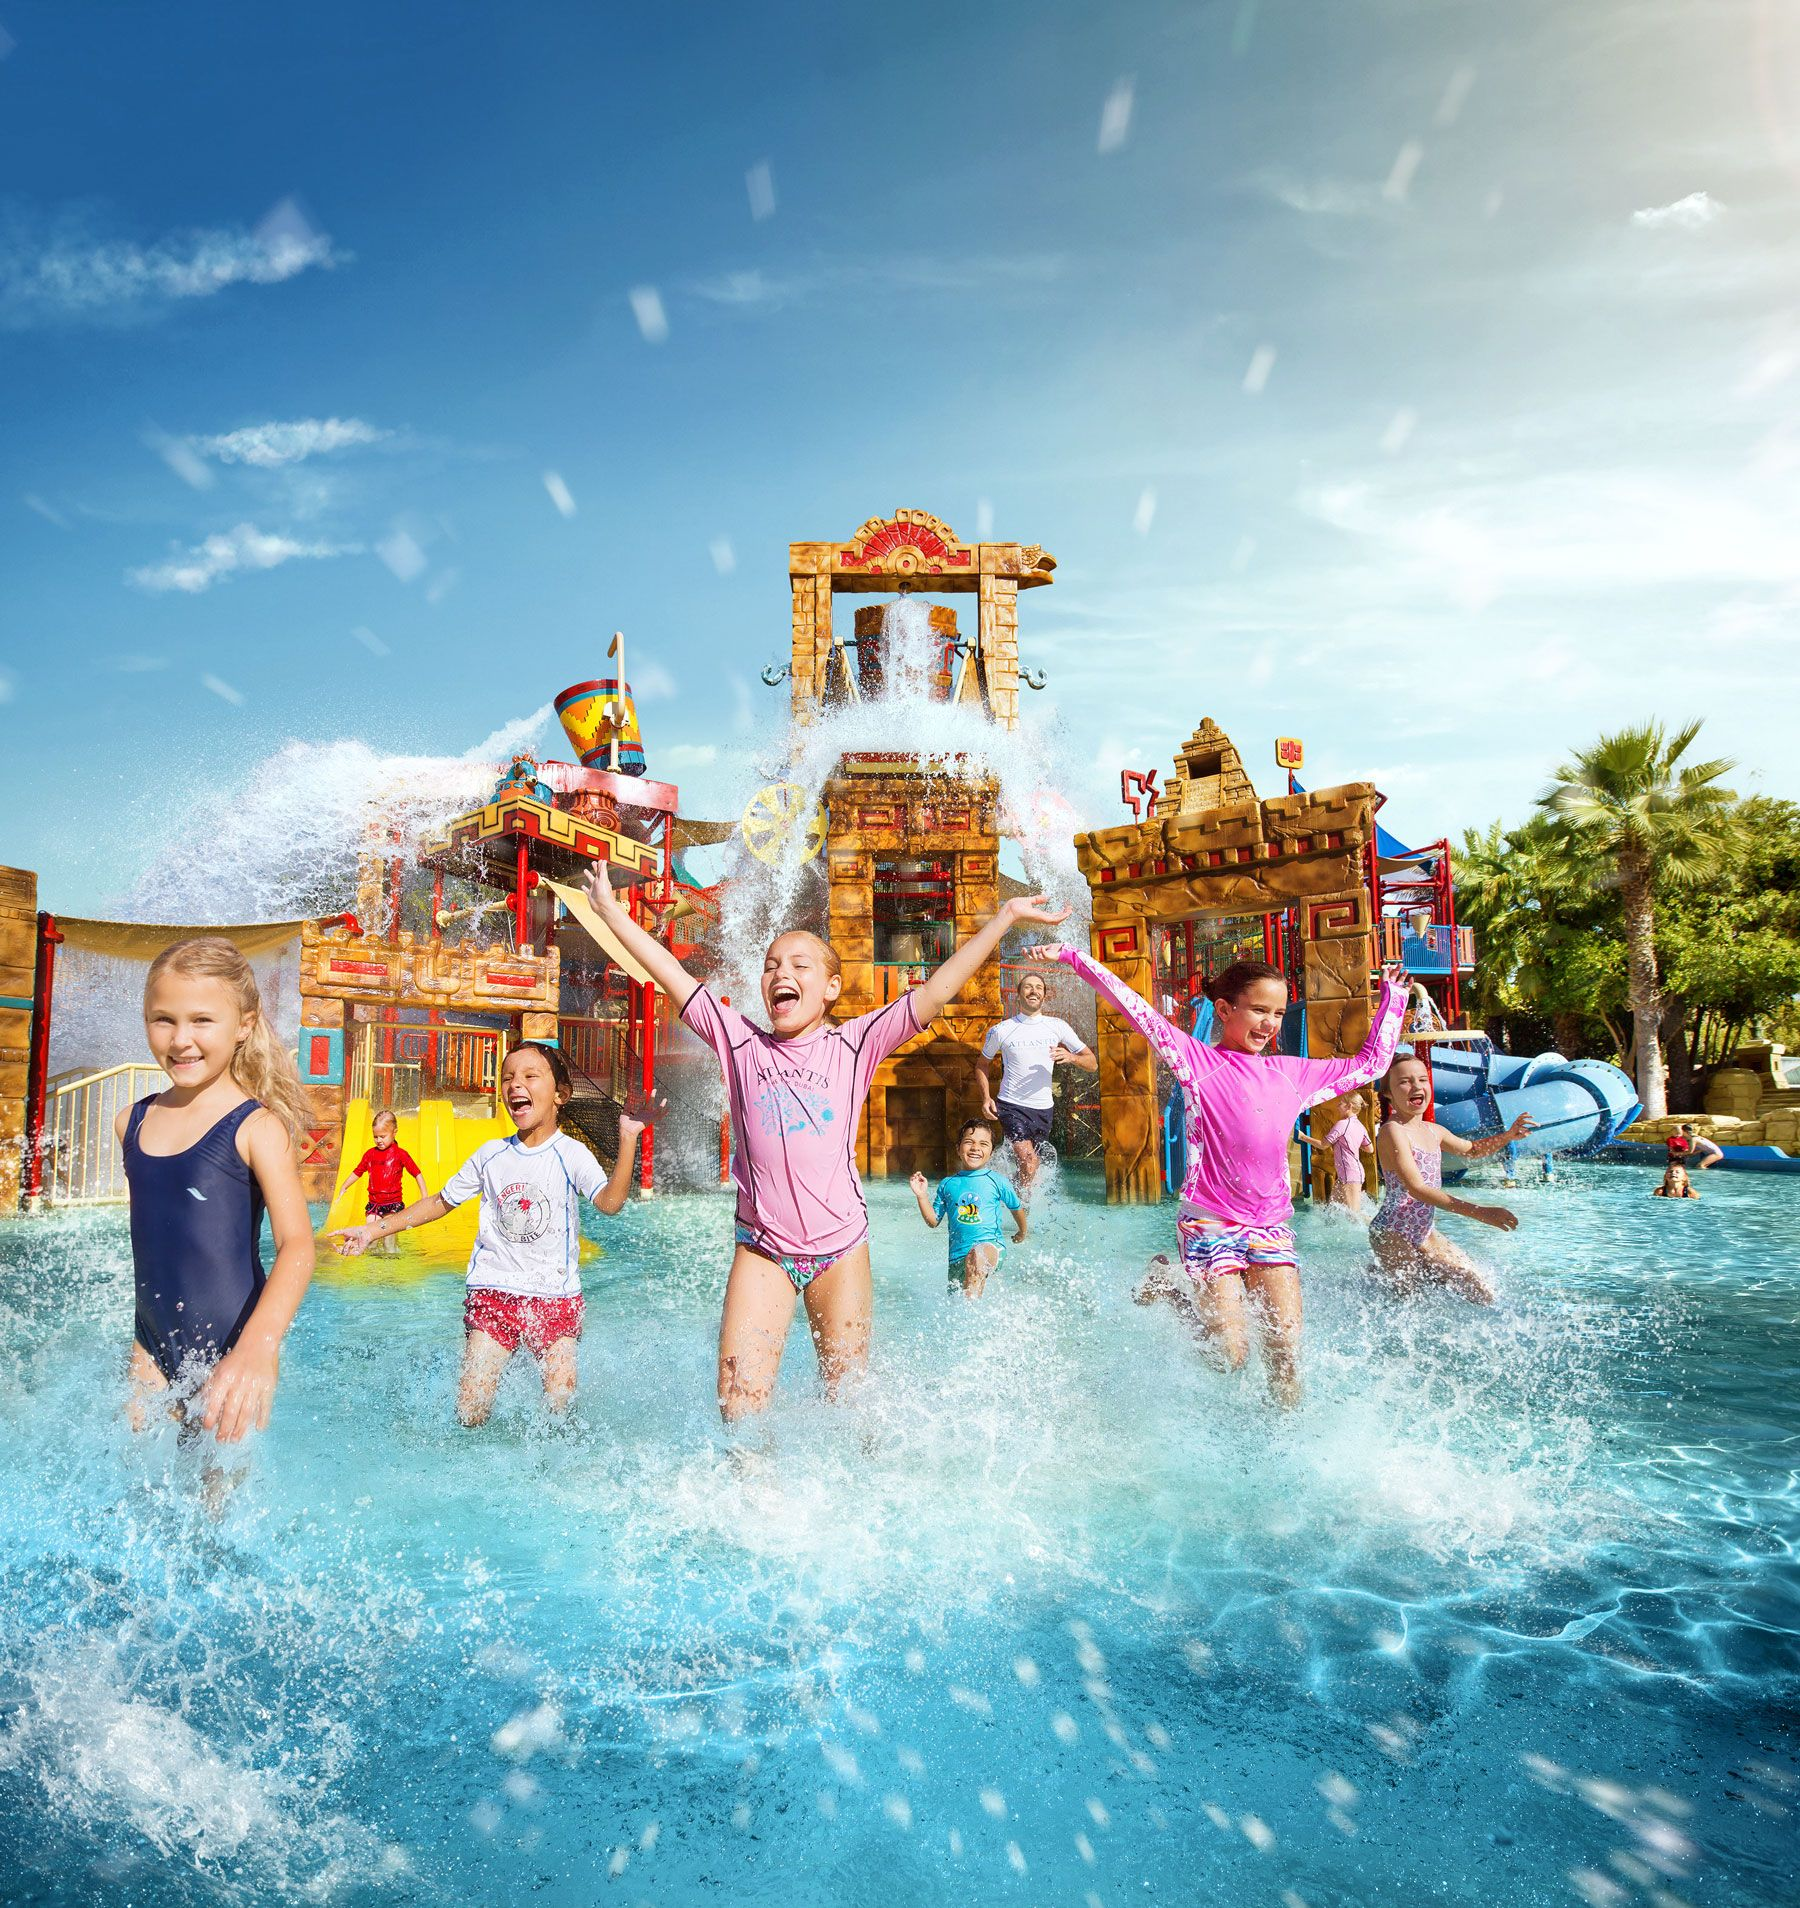 On Sunday 27 March, our award-winning Aquaventure Waterpark will be transformed into an Easter egg hunting ground for a day a family fun! Jump onto one of our water slides and search for the bright Easter eggs scattered around the park, as you slip and slide on our adventurous rides!